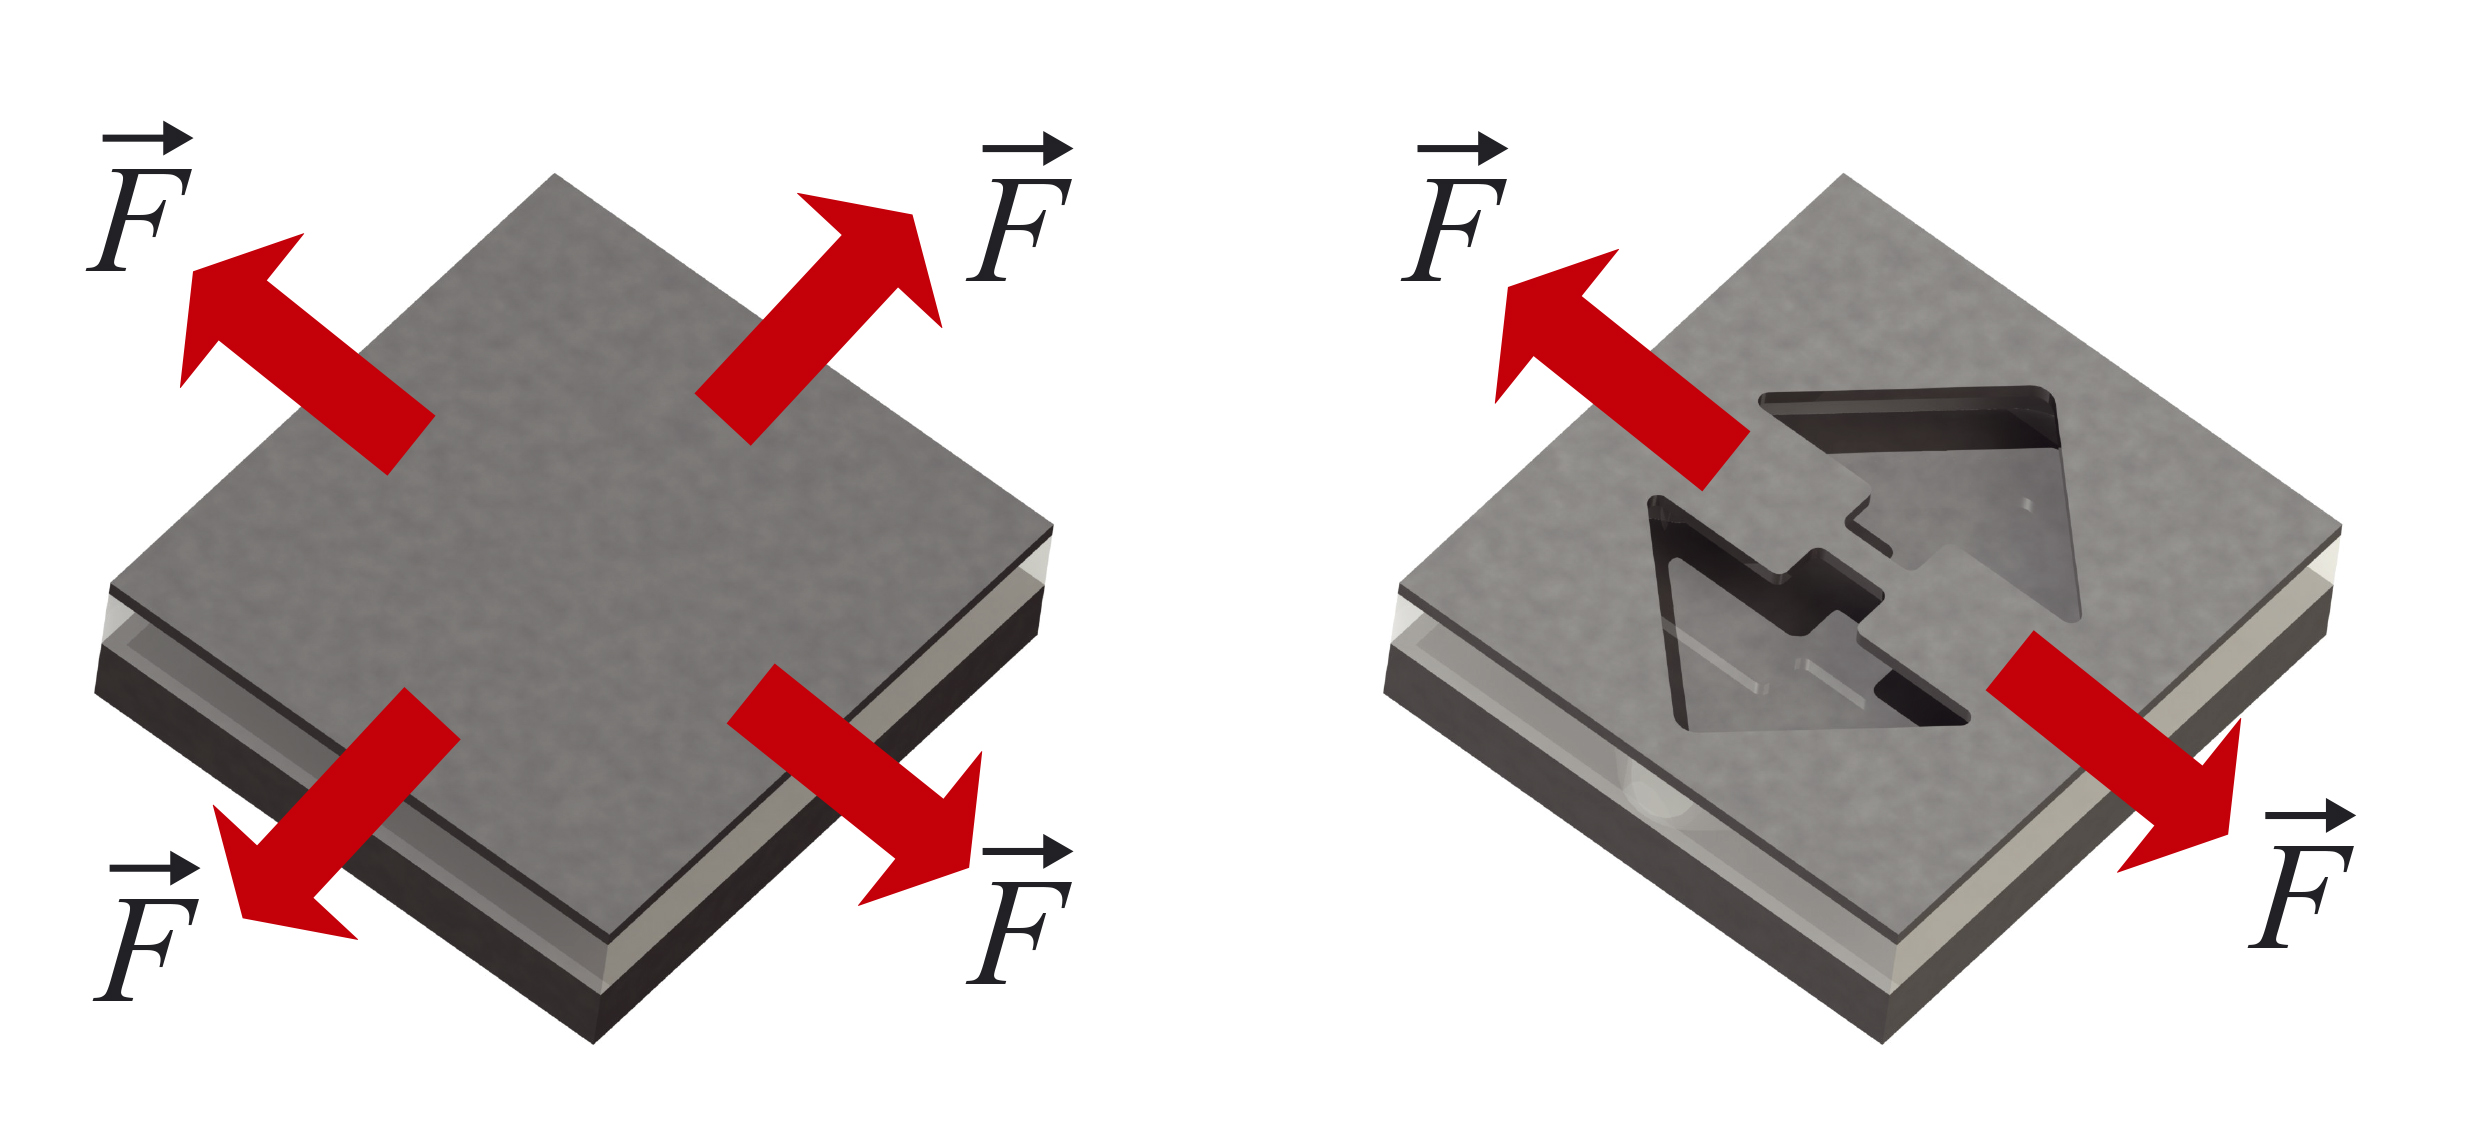 The principle of the method used for achieving a high stress in silicon. Firstly, the forces act in all directions in the silicon layer. If small parts of the layer are then etched away to create a thin wire, the forces act along the wires so that a high stress is created within them. (Graphics: Paul Scherrer Institut/ R. Minamisawa)<br><br>Please note: all images are for single use only to illustrate this press release and are not to be archived. Please credit the copyright holder.